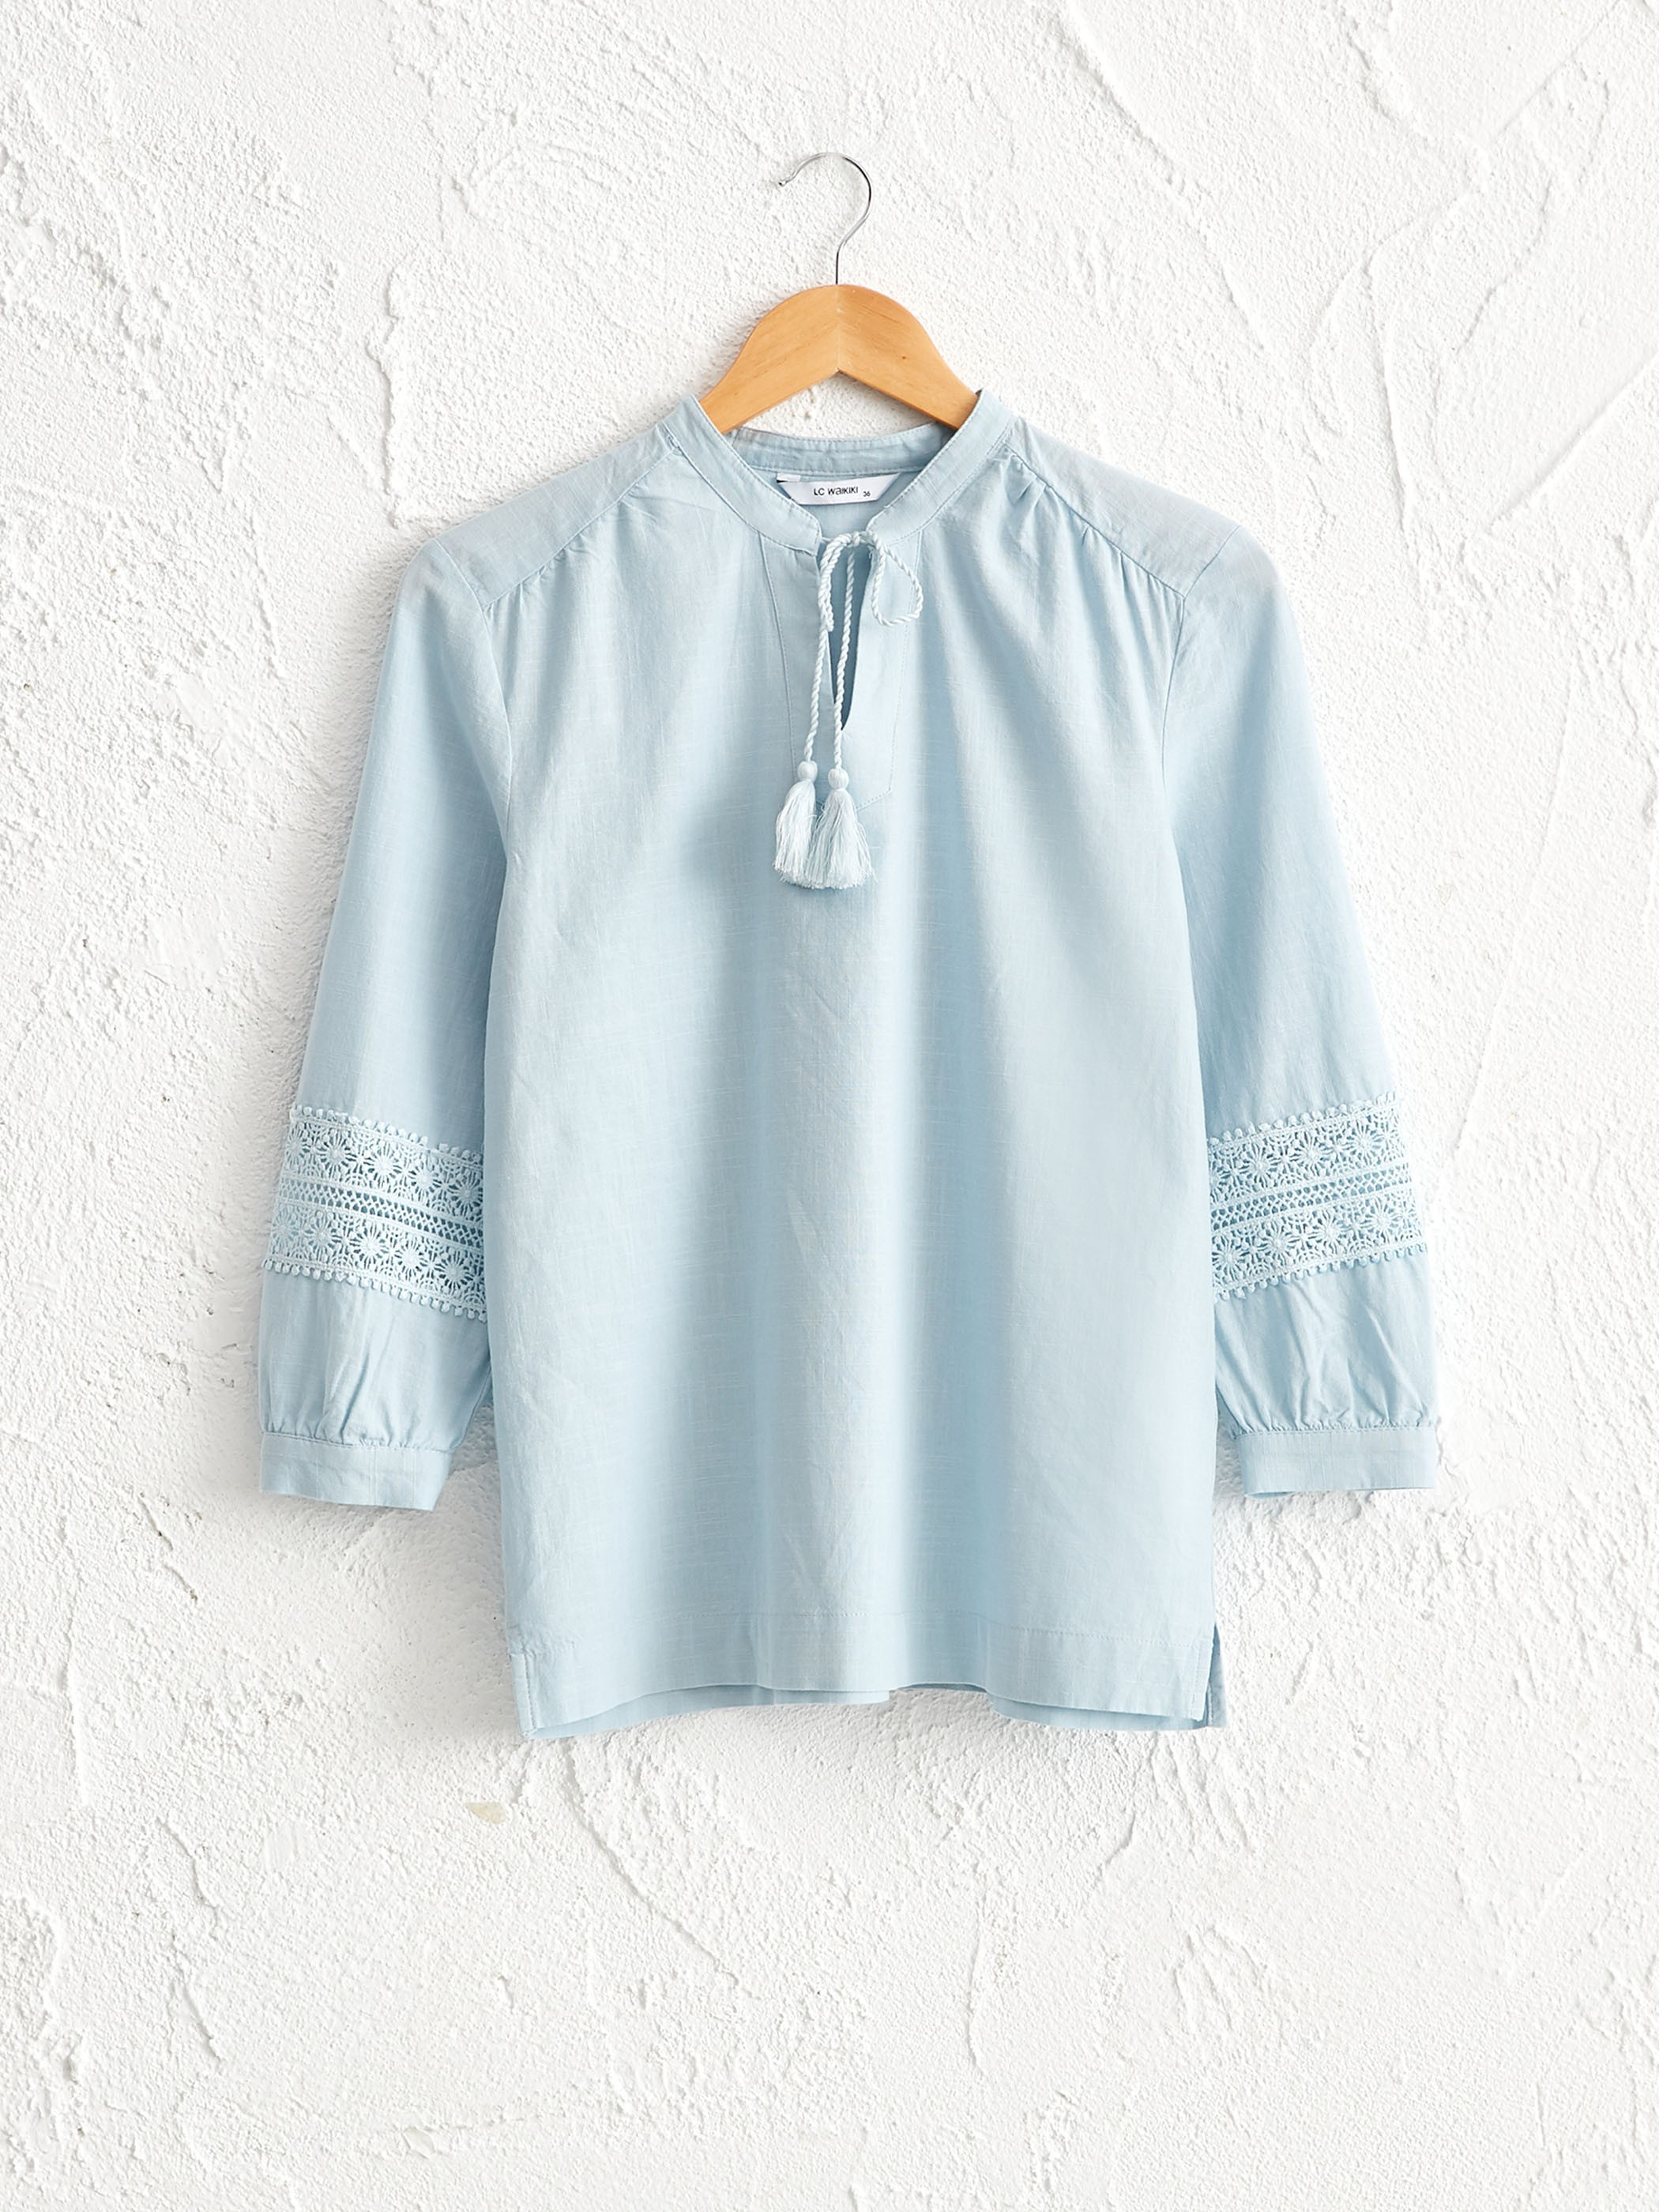 BLUE - Lace Detailed Cotton Blouse - 0SQ968Z8